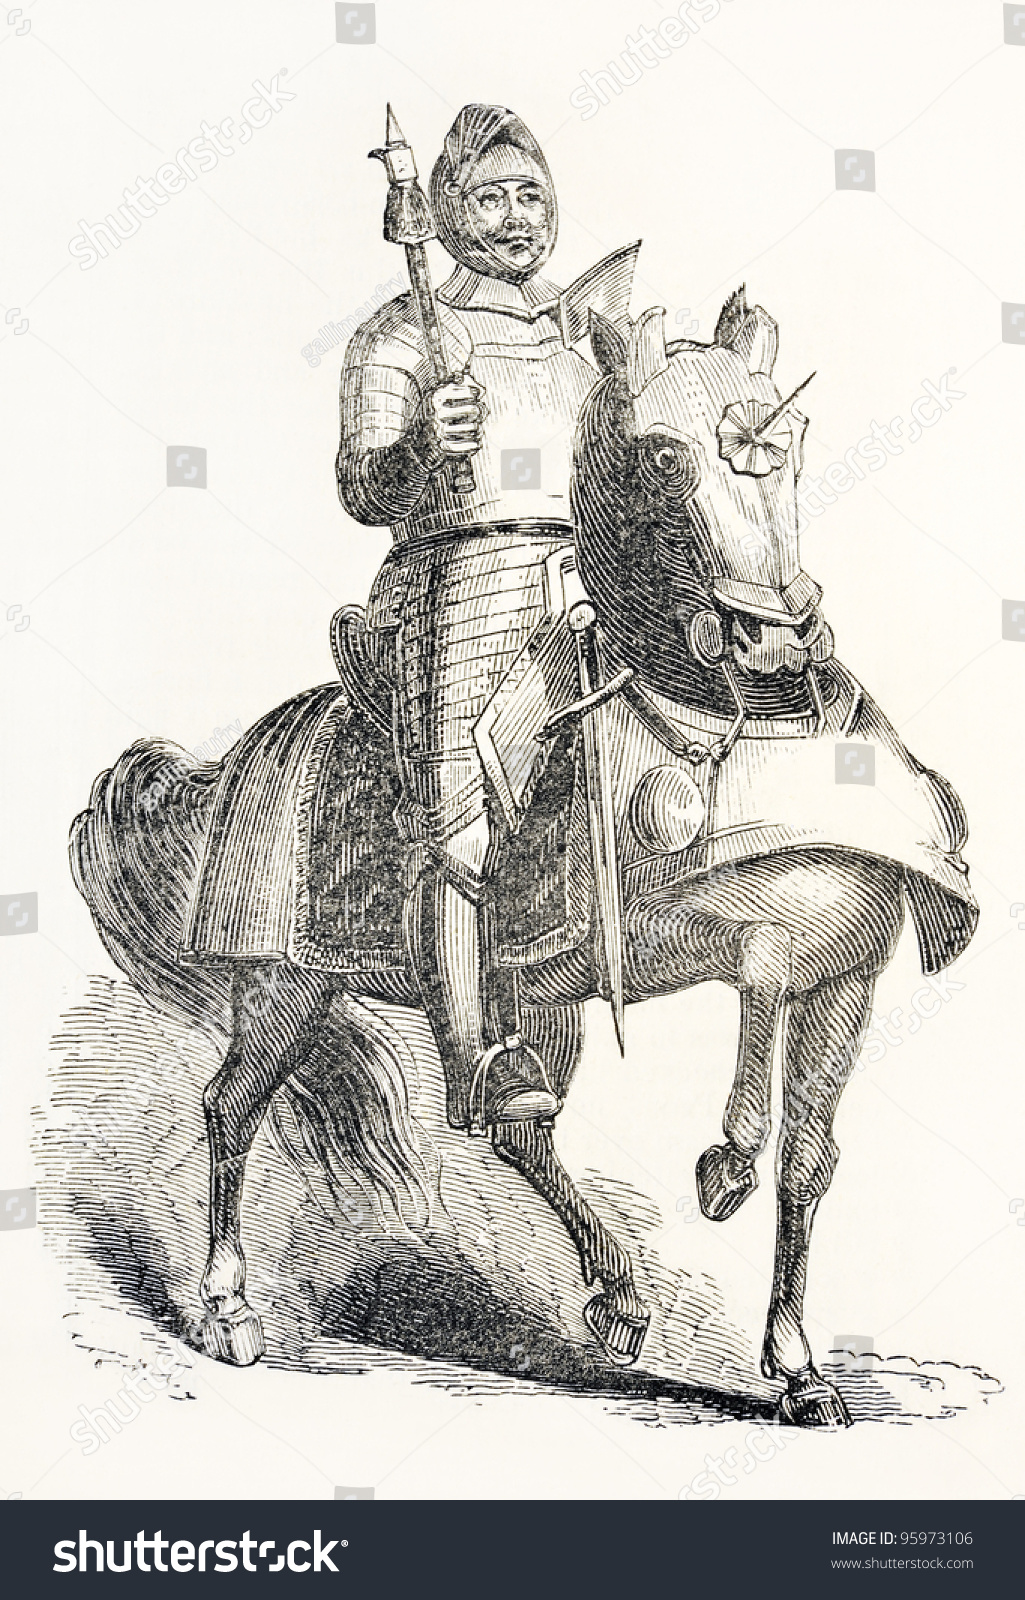 Engraving Of Medieval English Knight On War Horse, From ...